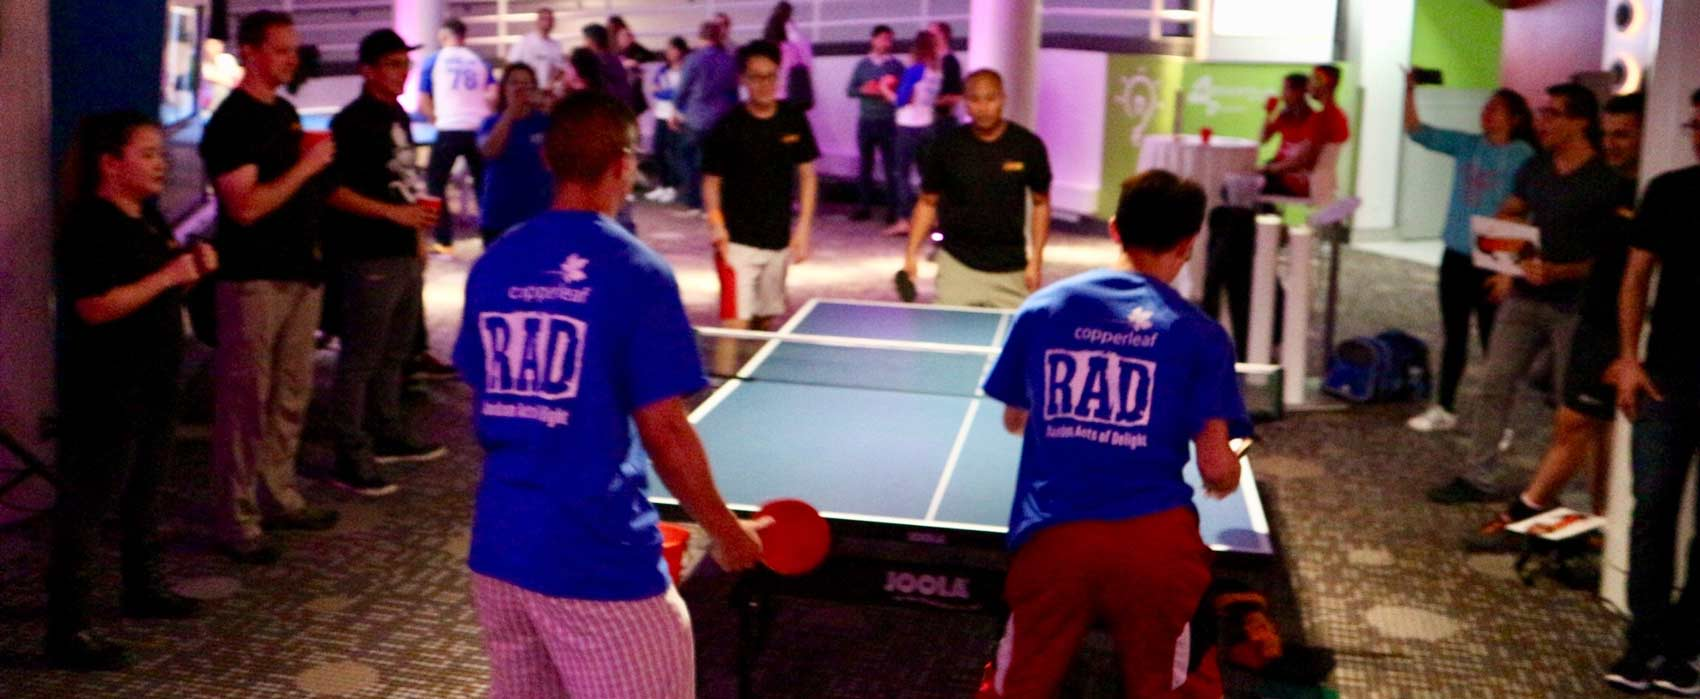 Image for Copperleaf's RAD Initiative Serves Up Victory at TechPong 2017